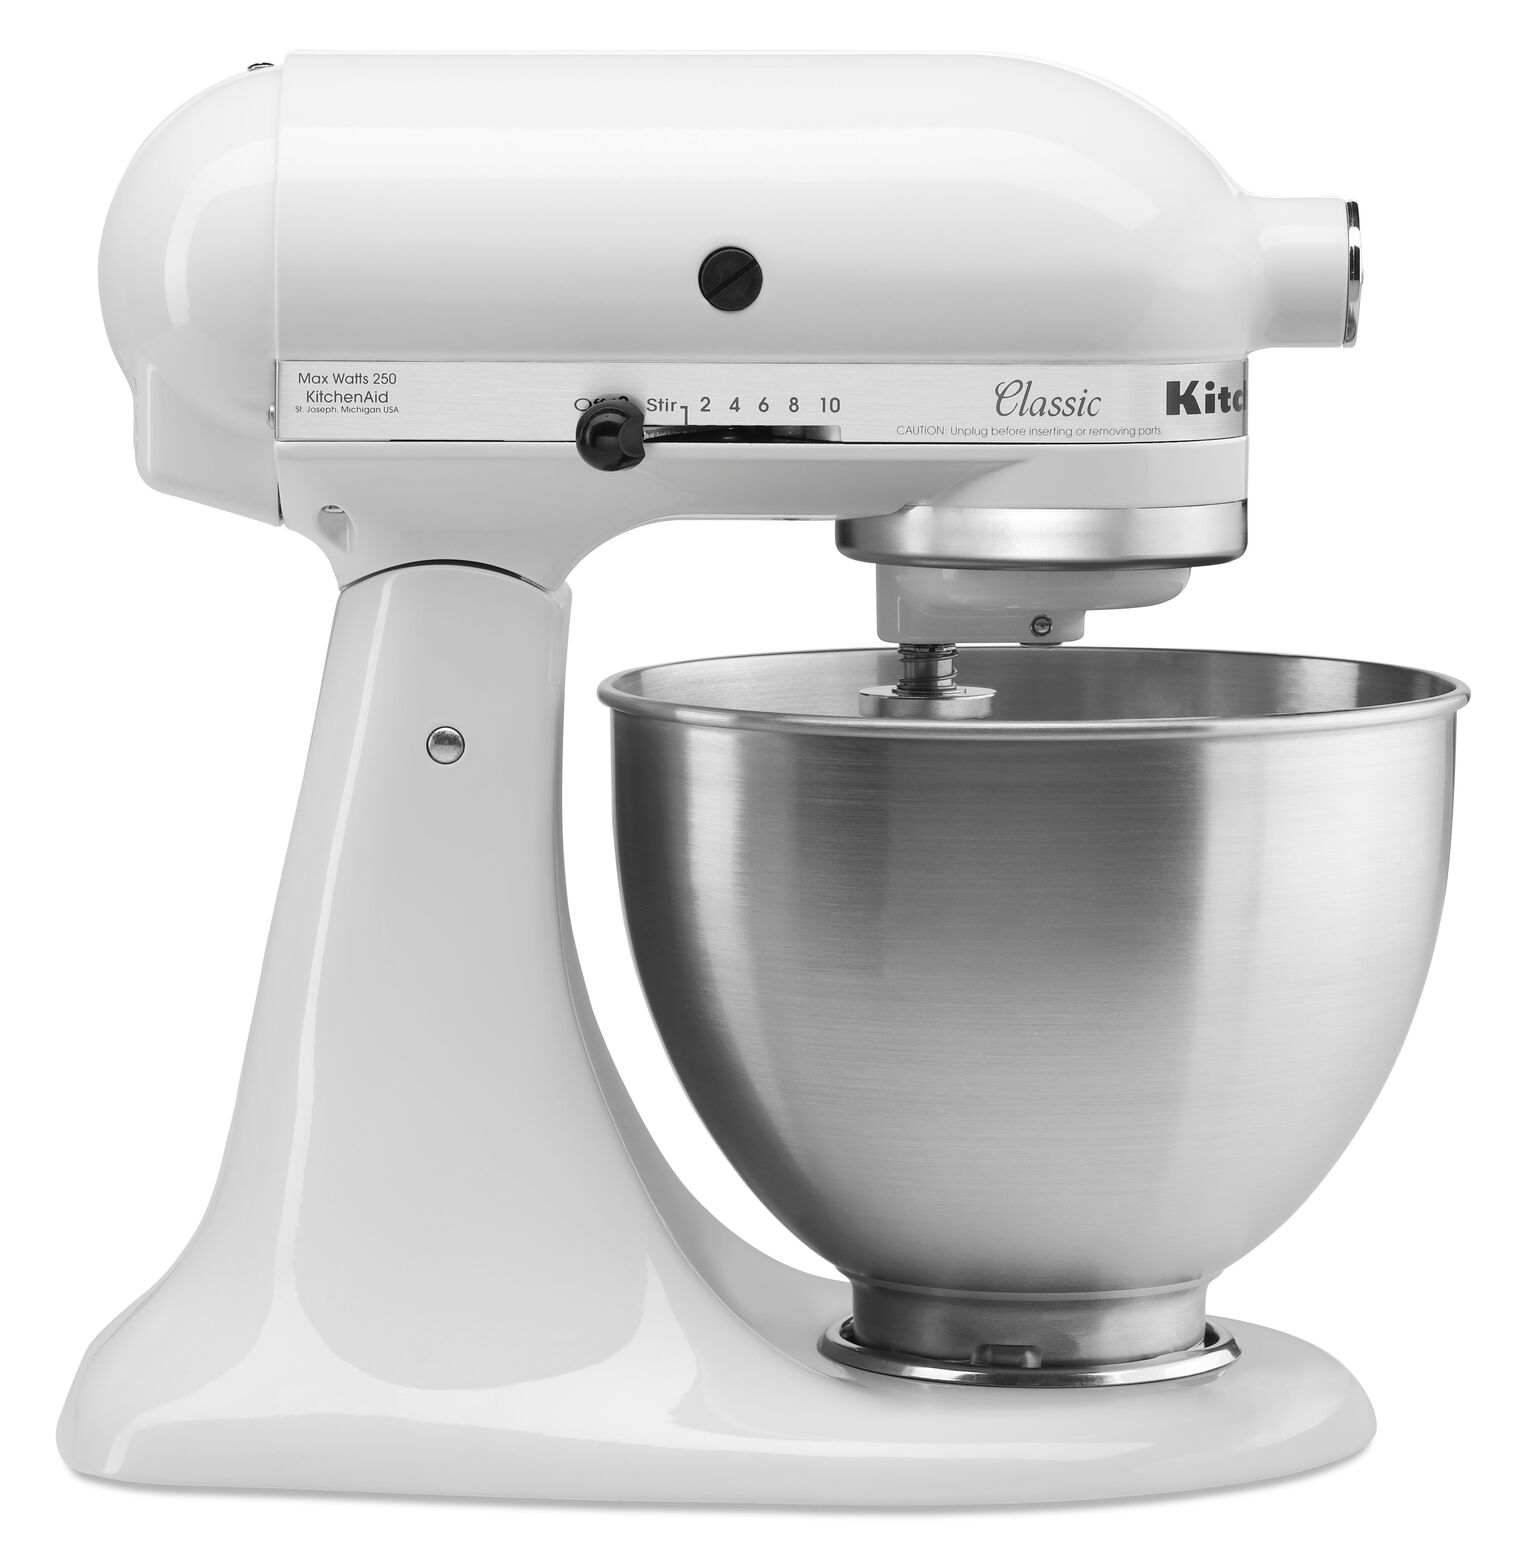 KitchenAid® Classic™ Series 4.5 Quart Tilt-Head Stand Mixer, White (3215)